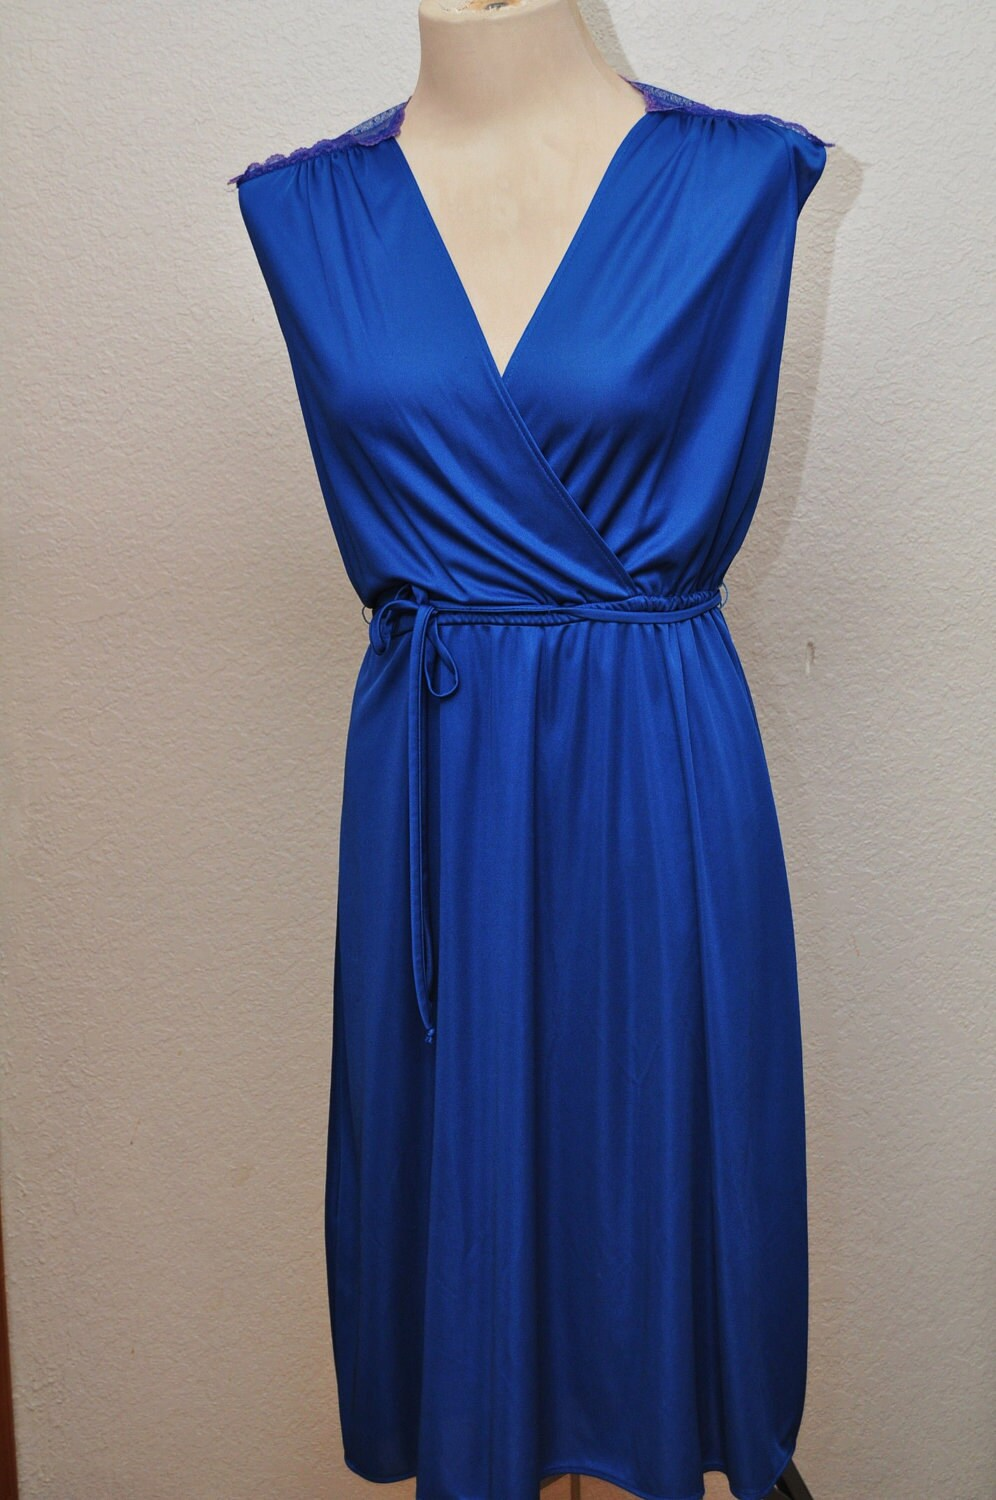 Vintage Ladies Dress in Electric Blue Disco Style Wrap Bodice Lace Back